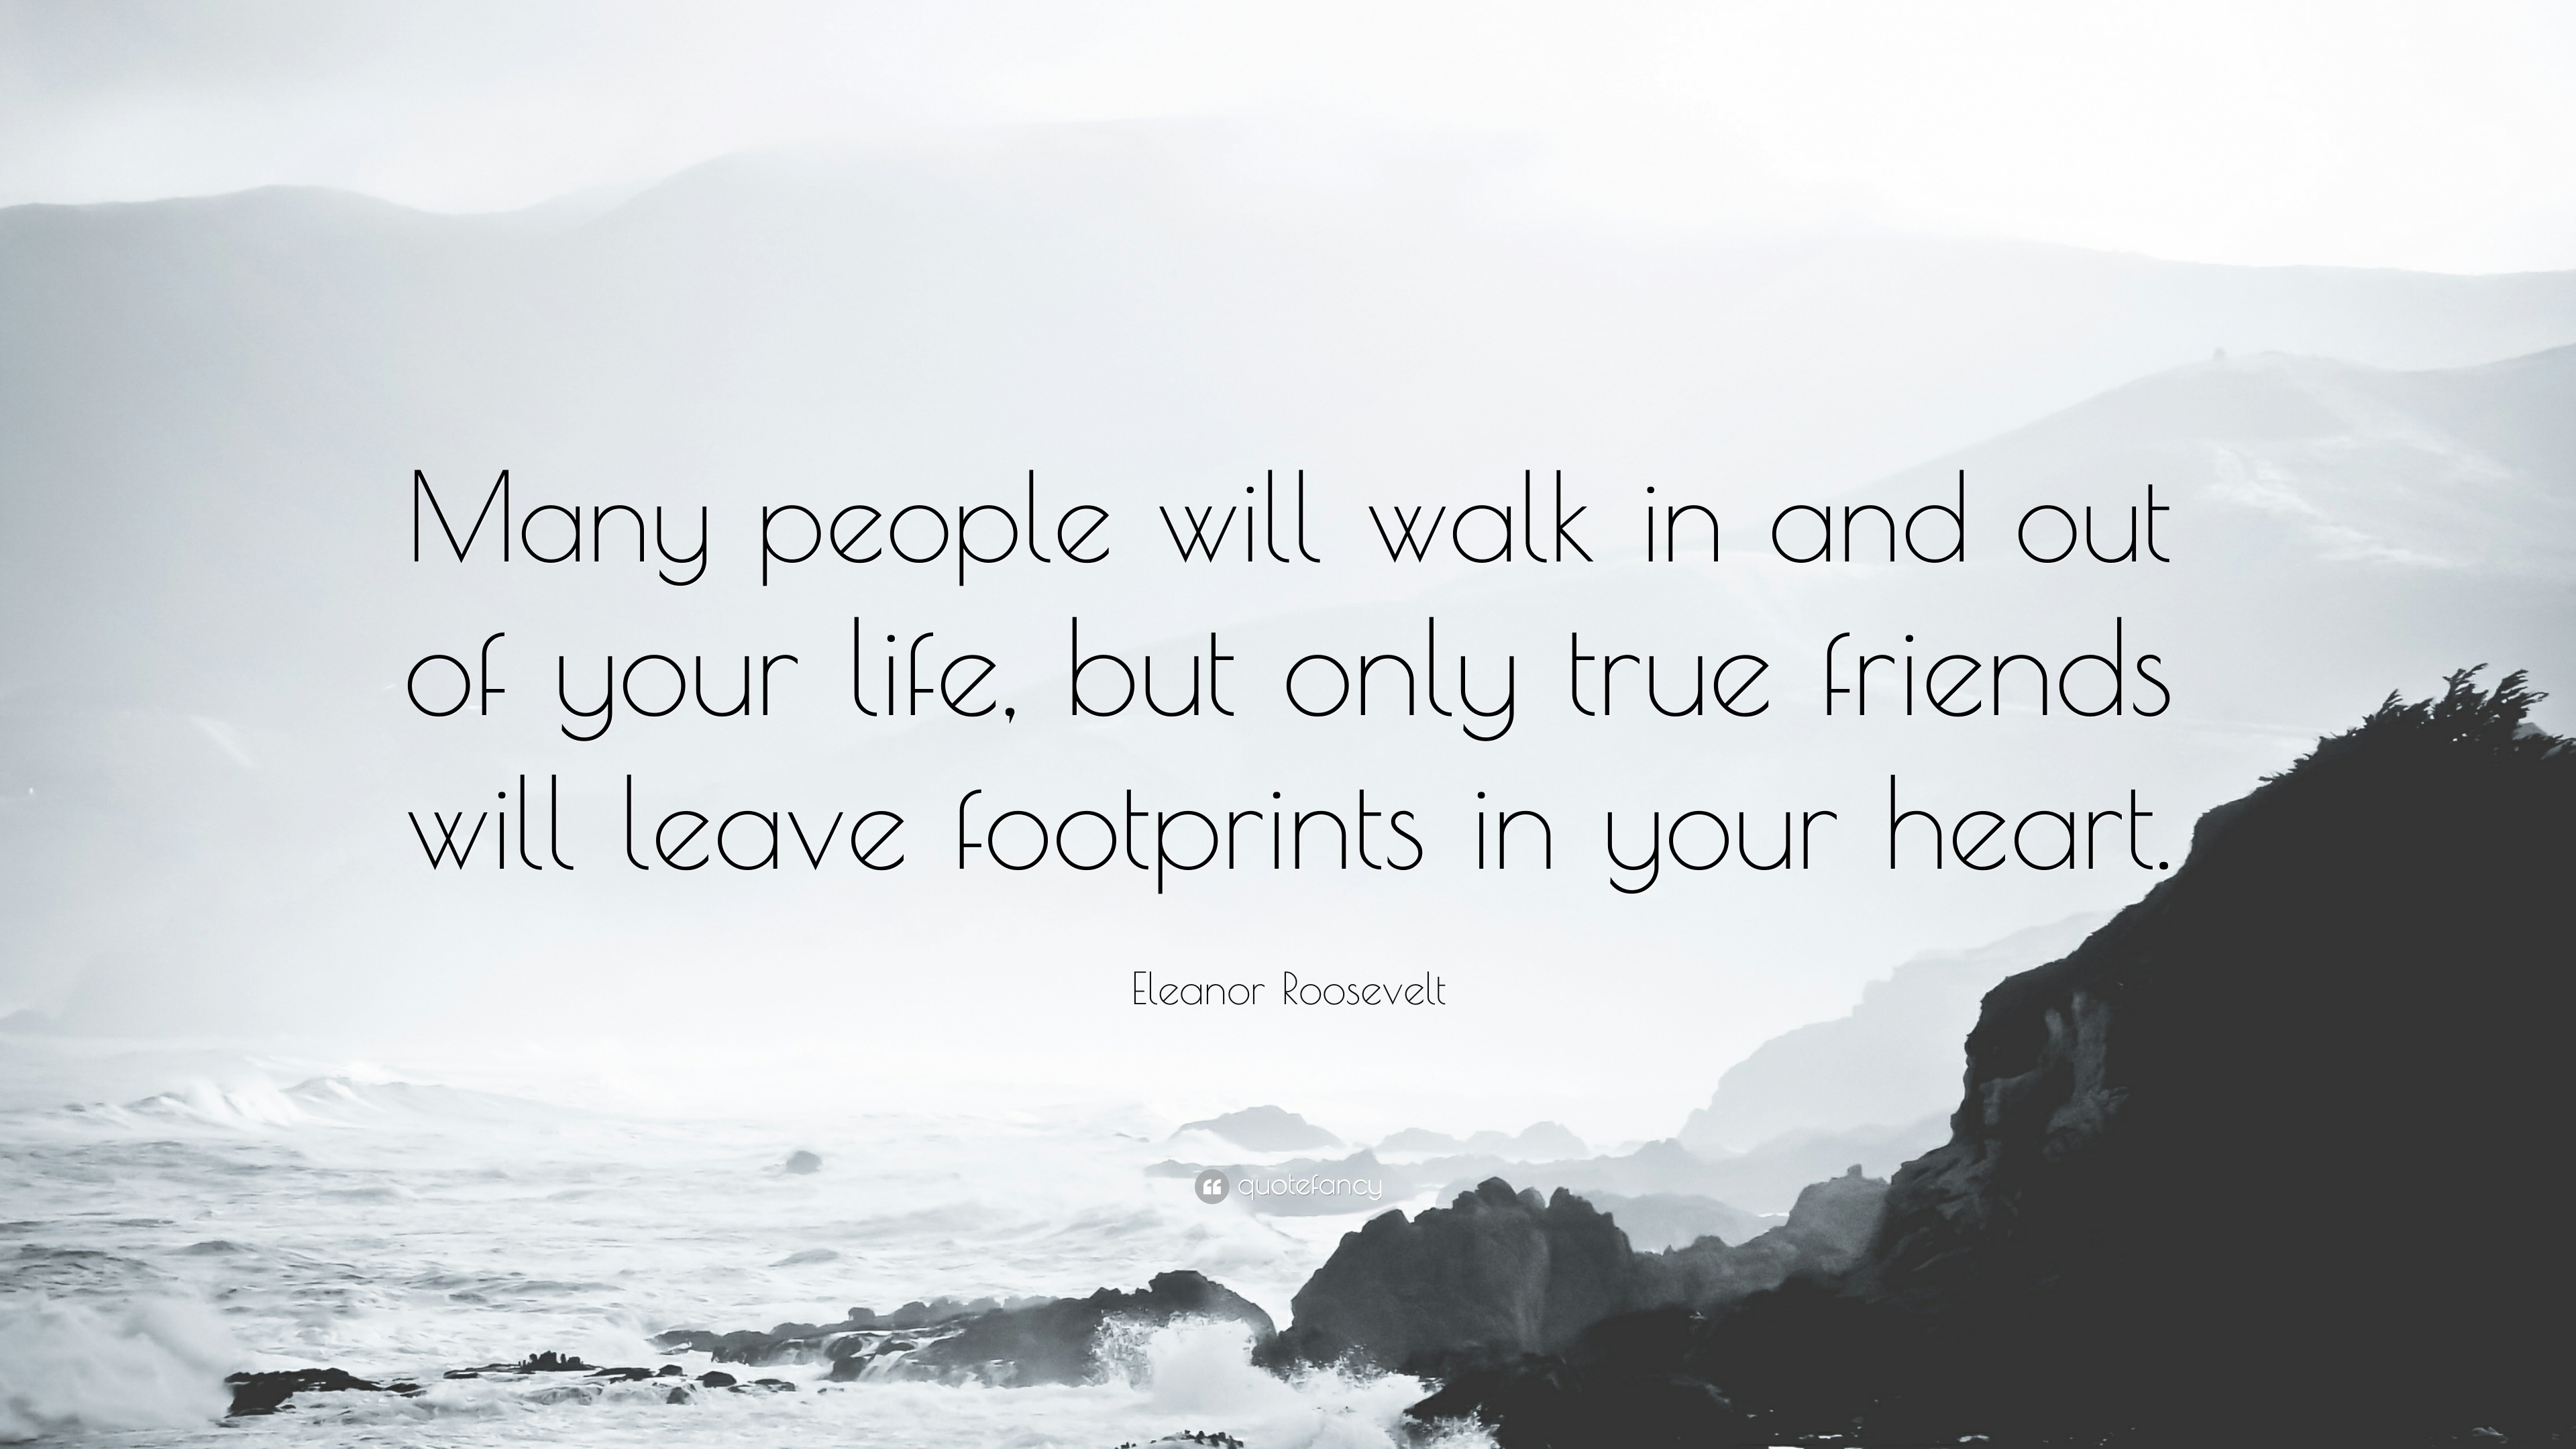 friendship quotes (21 wallpapers) - quotefancy